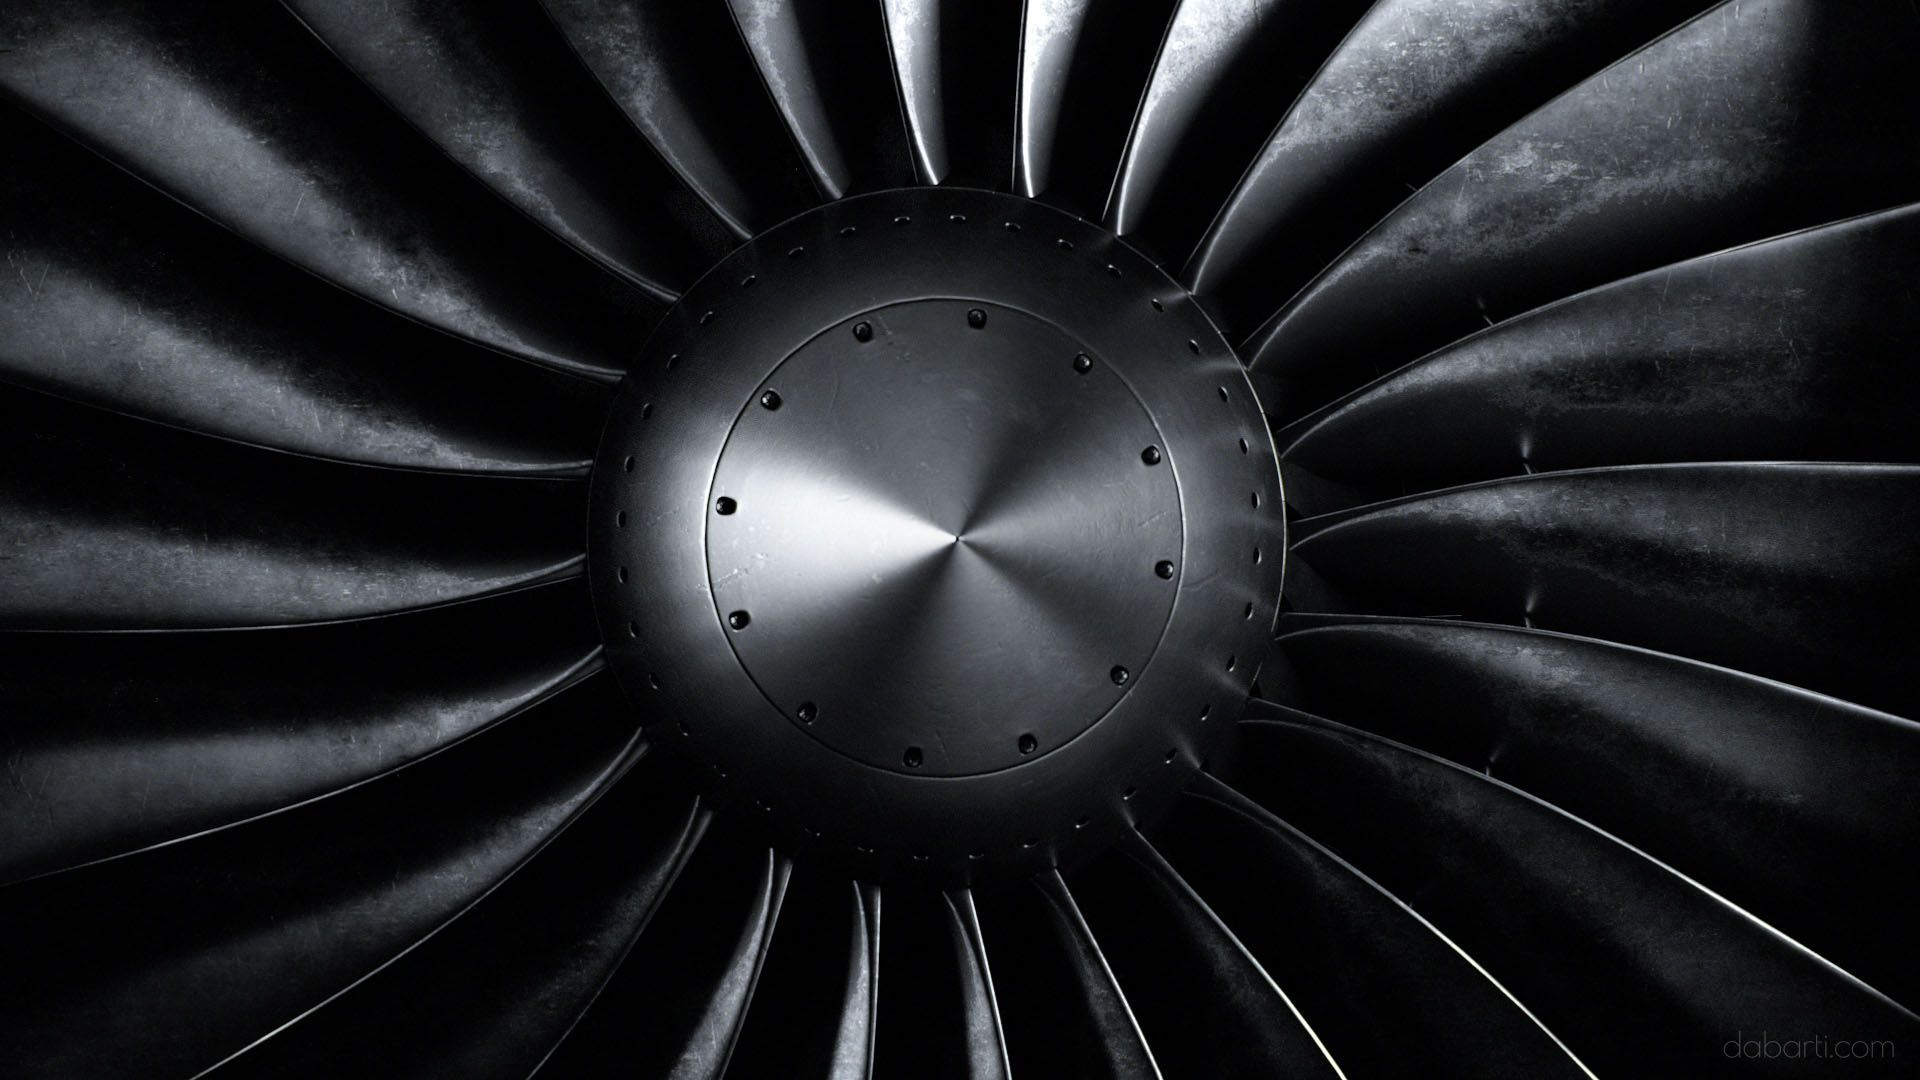 Jet Engine Wallpapers Top Free Jet Engine Backgrounds Wallpaperaccess